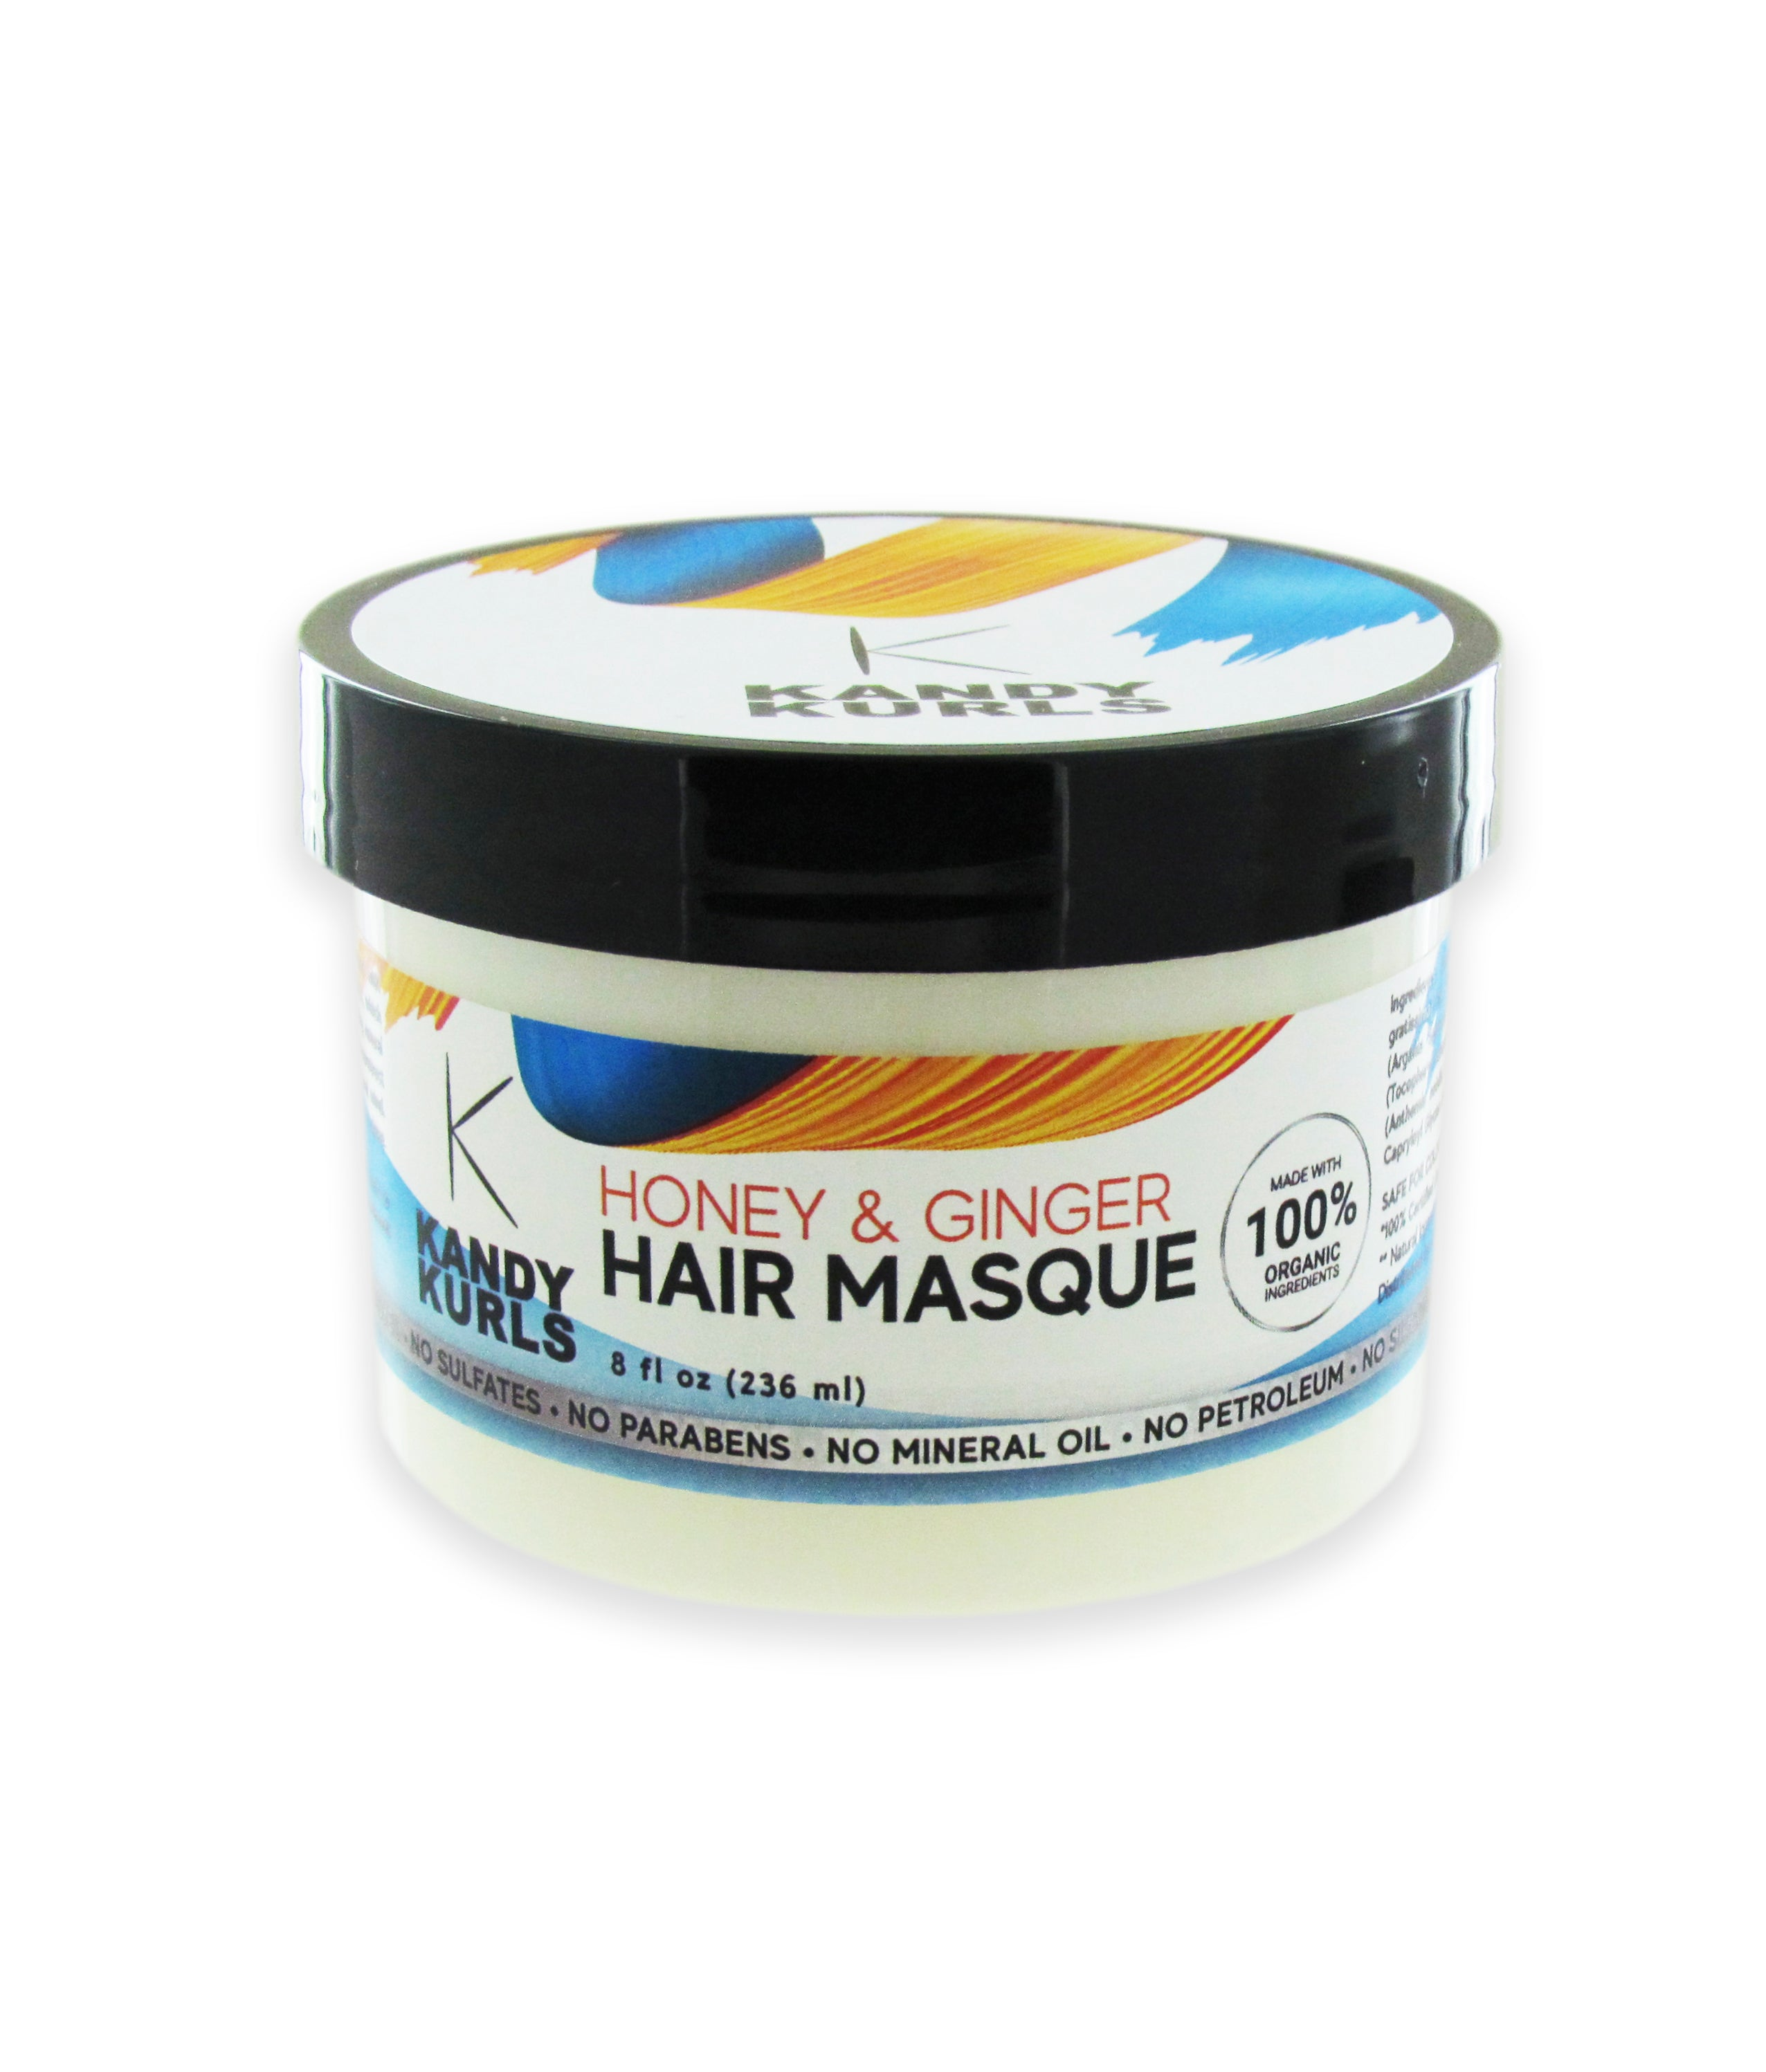 KANDY KURLS HONEY & GINGER HAIR MASQUE